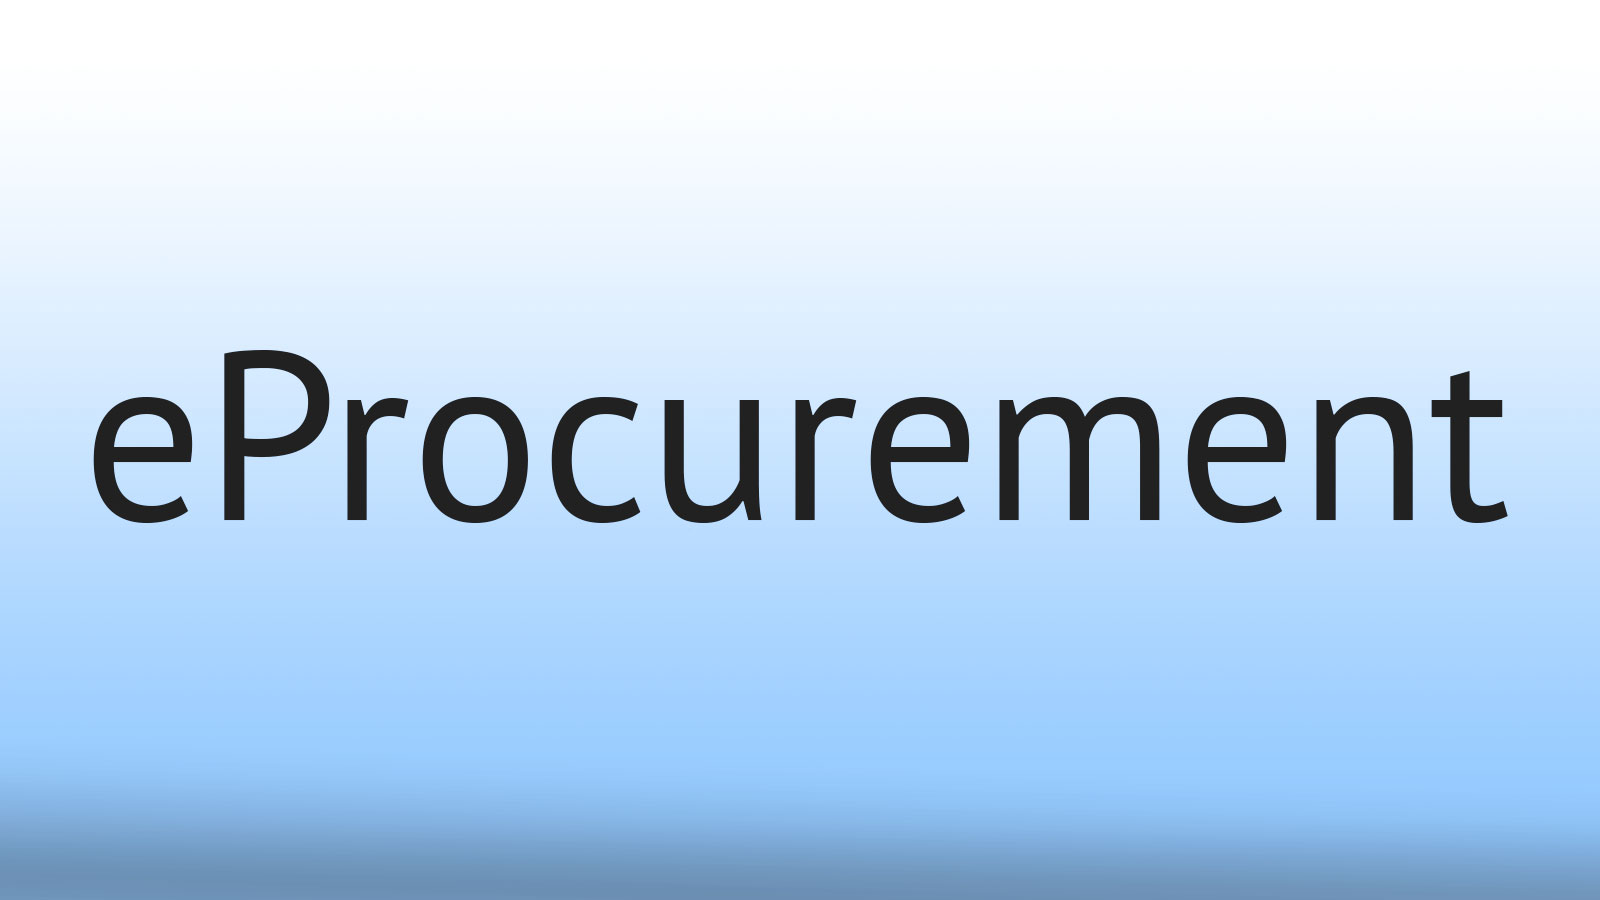 eProcurement - a Billion and Counting